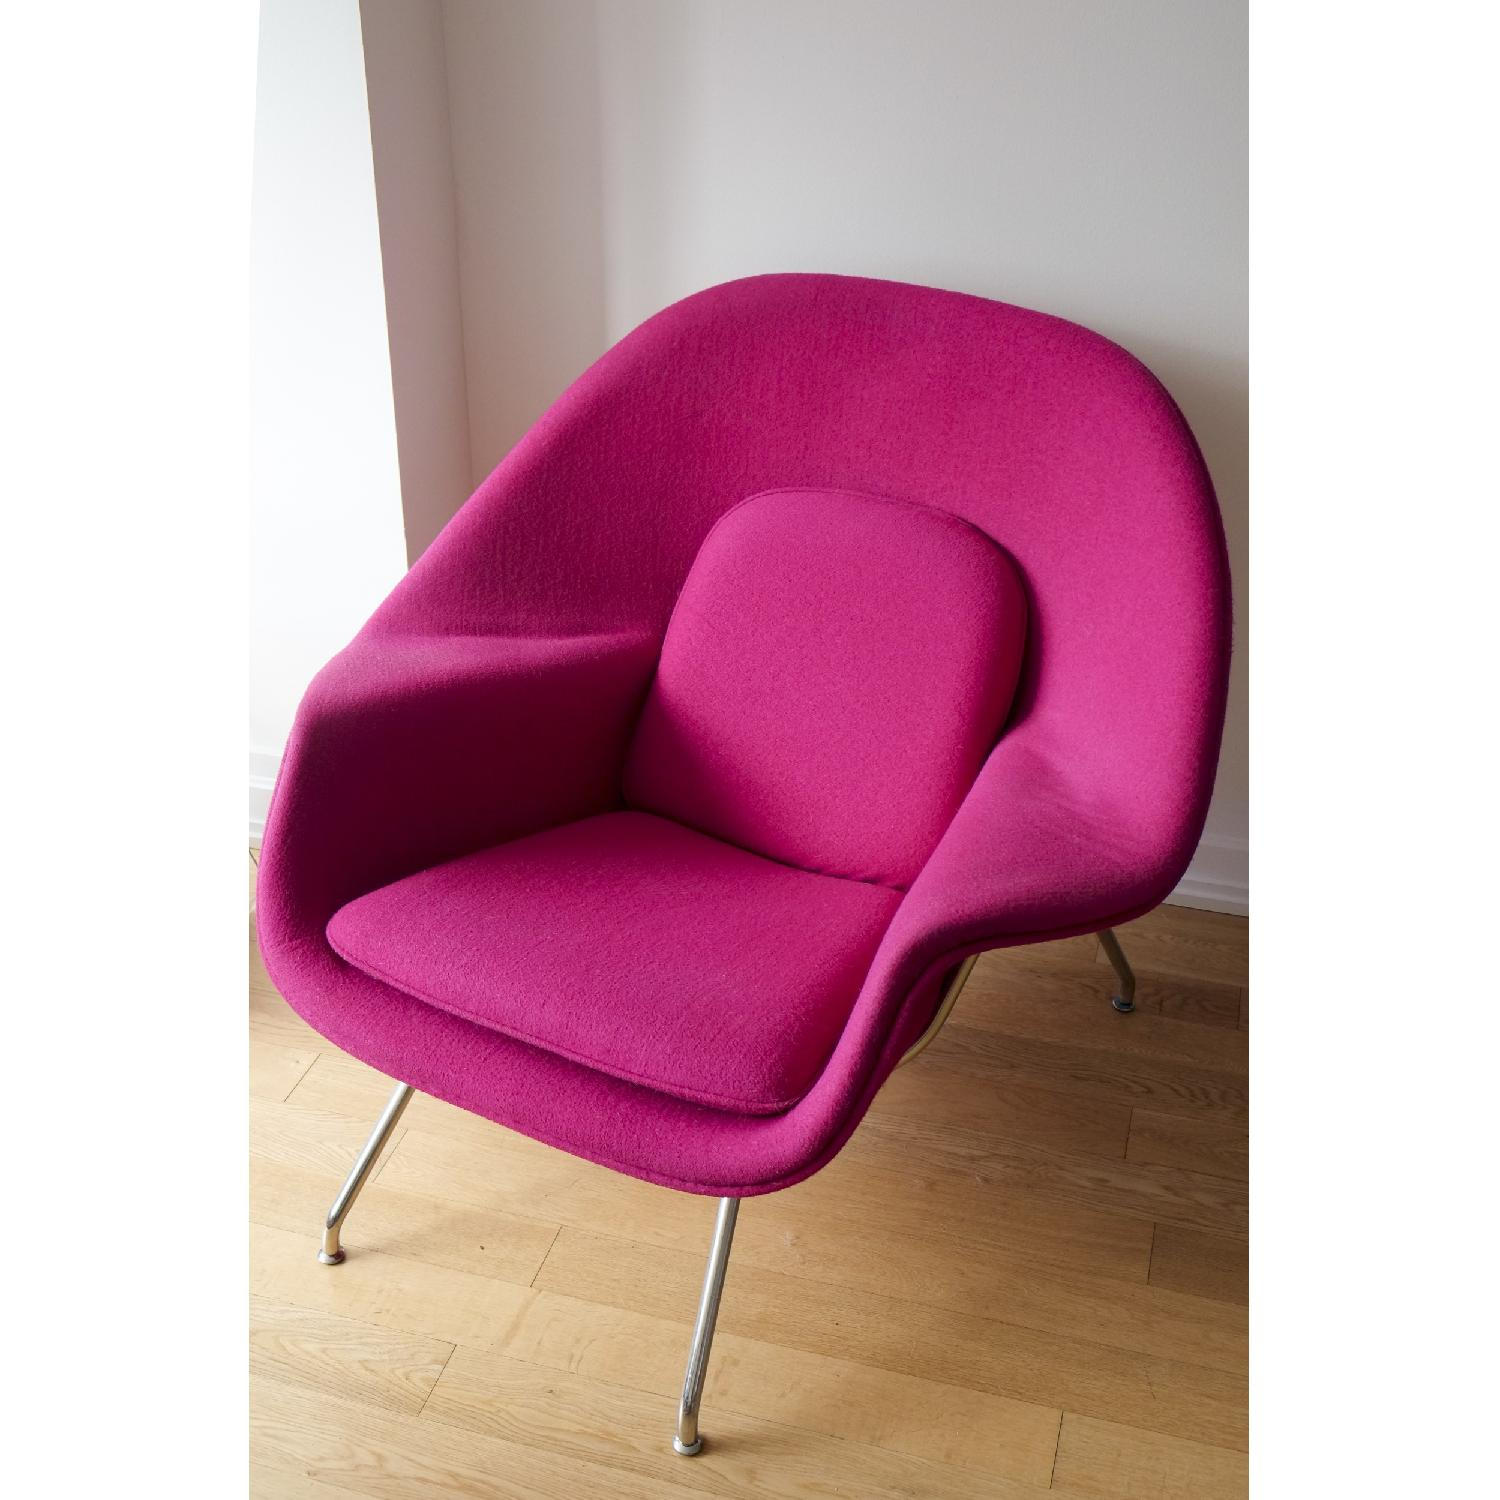 Rove concepts retro modern womb lounge chair ottoman aptdeco - Vintage womb chair for sale ...